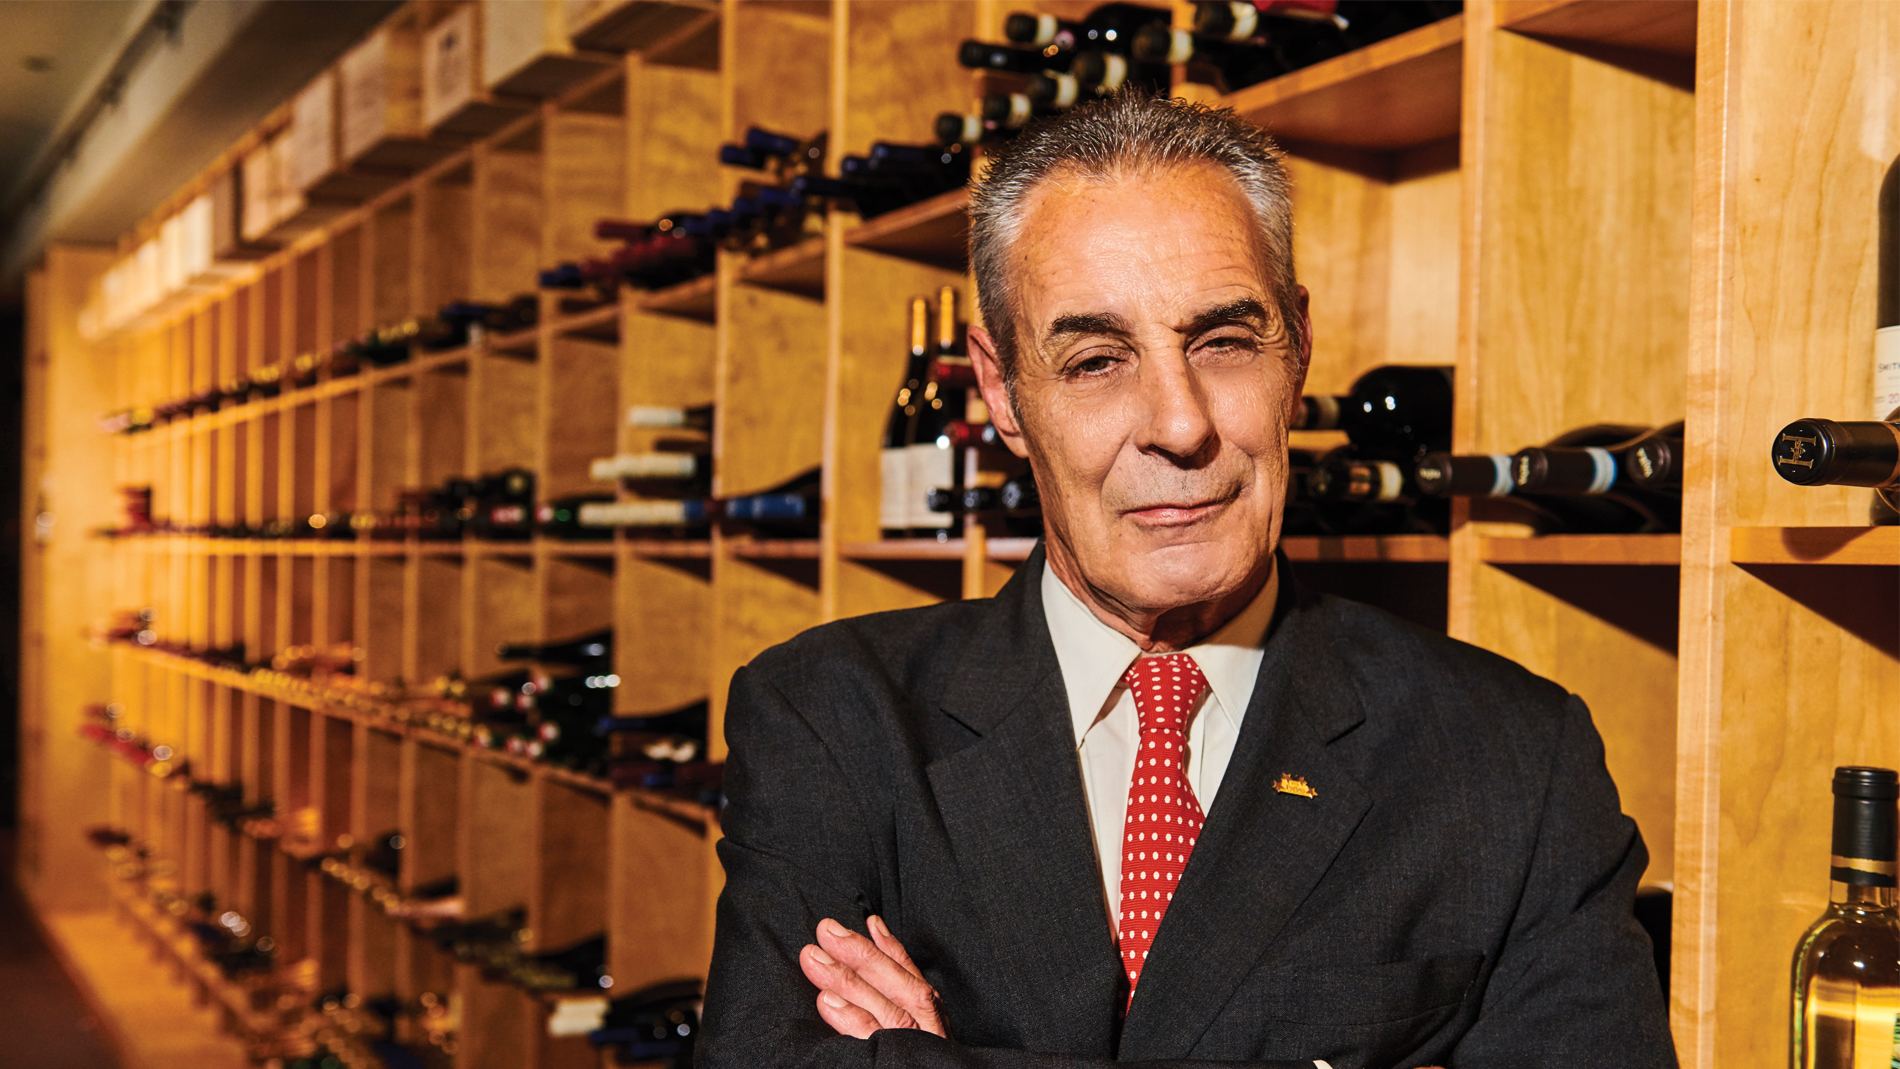 a man in a suit crossed arms standing in front of a wall of wine